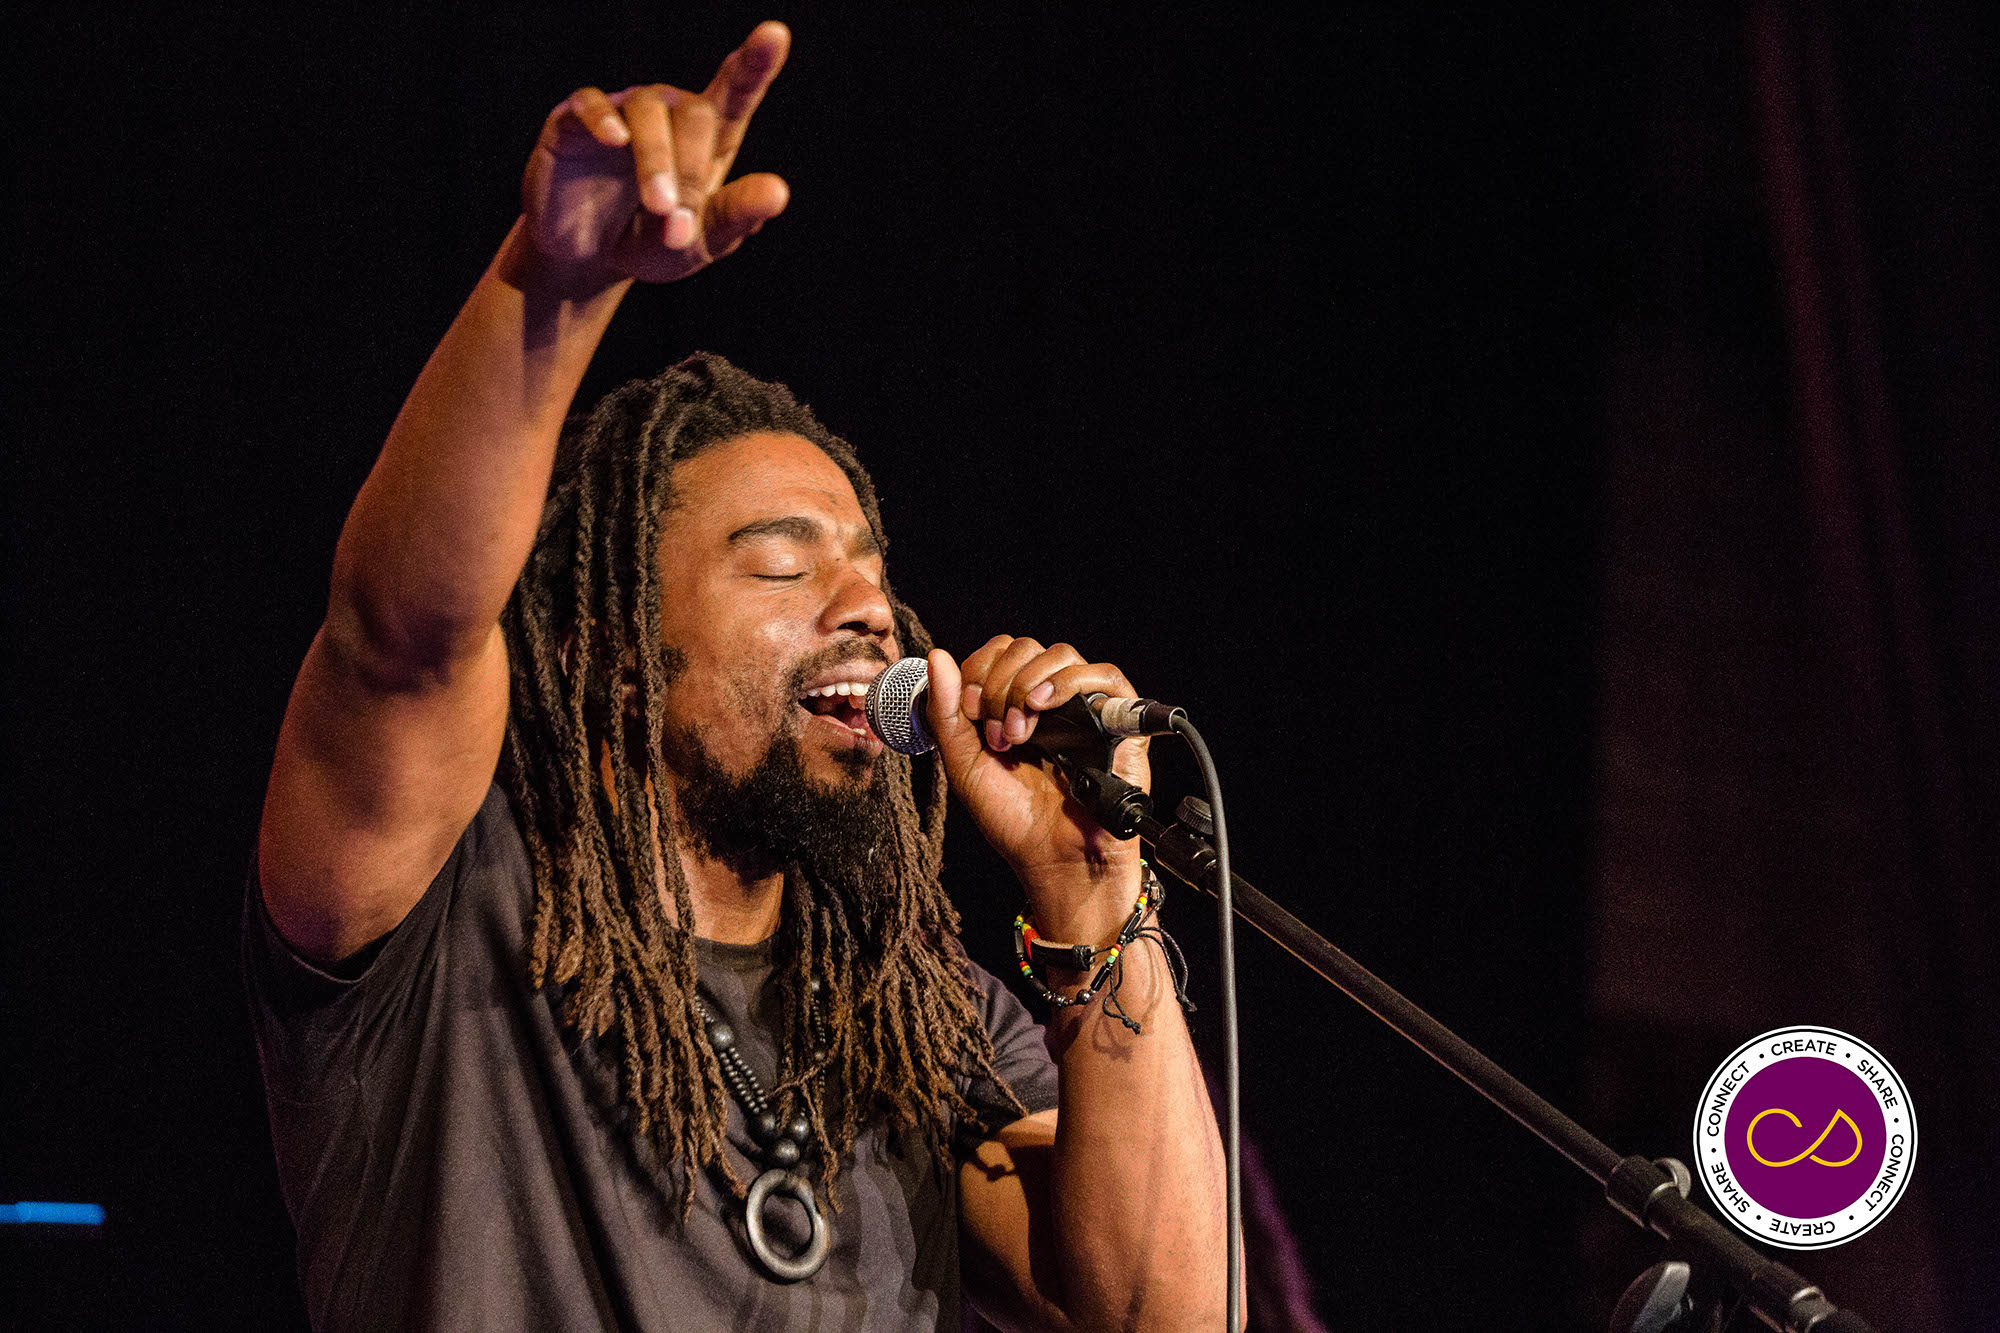 the-wailers-at-the-cabot-beverly-ma-photos-by-creative-salem_0917_19681780899_o.jpg